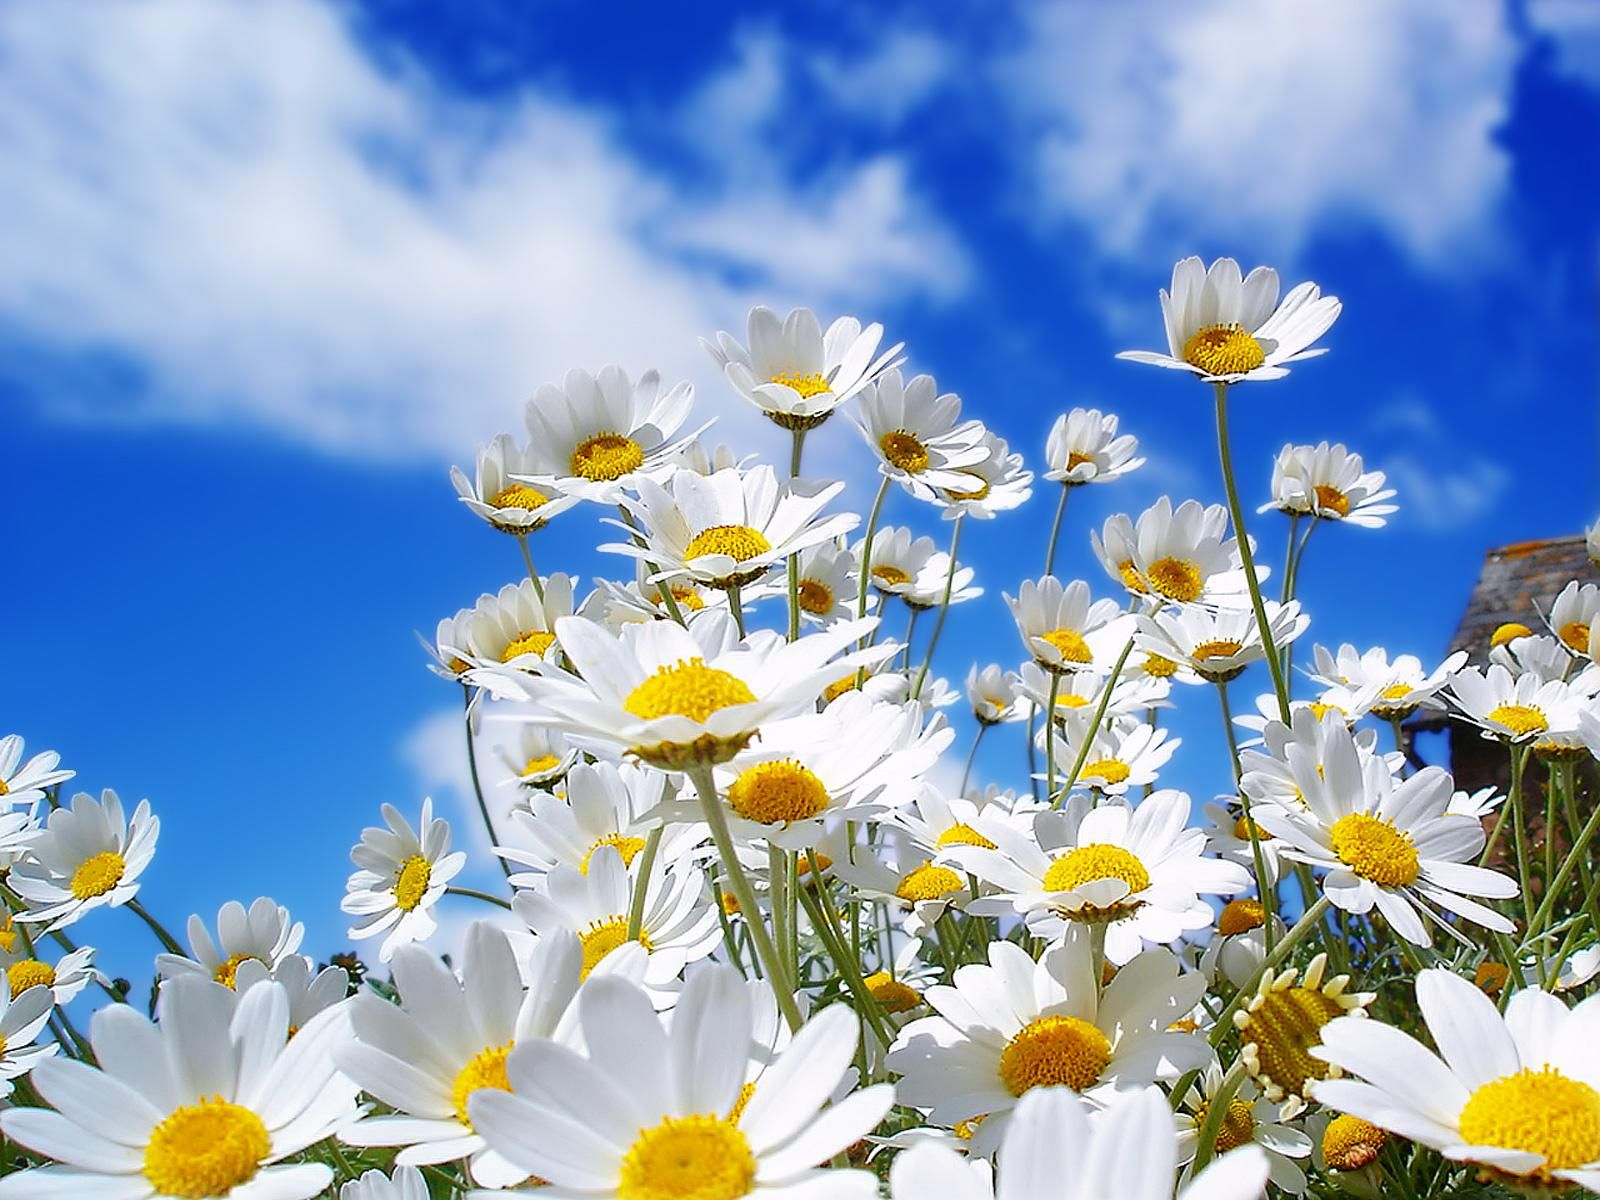 Hd wallpaper spring - Spring Wallpapers Wide